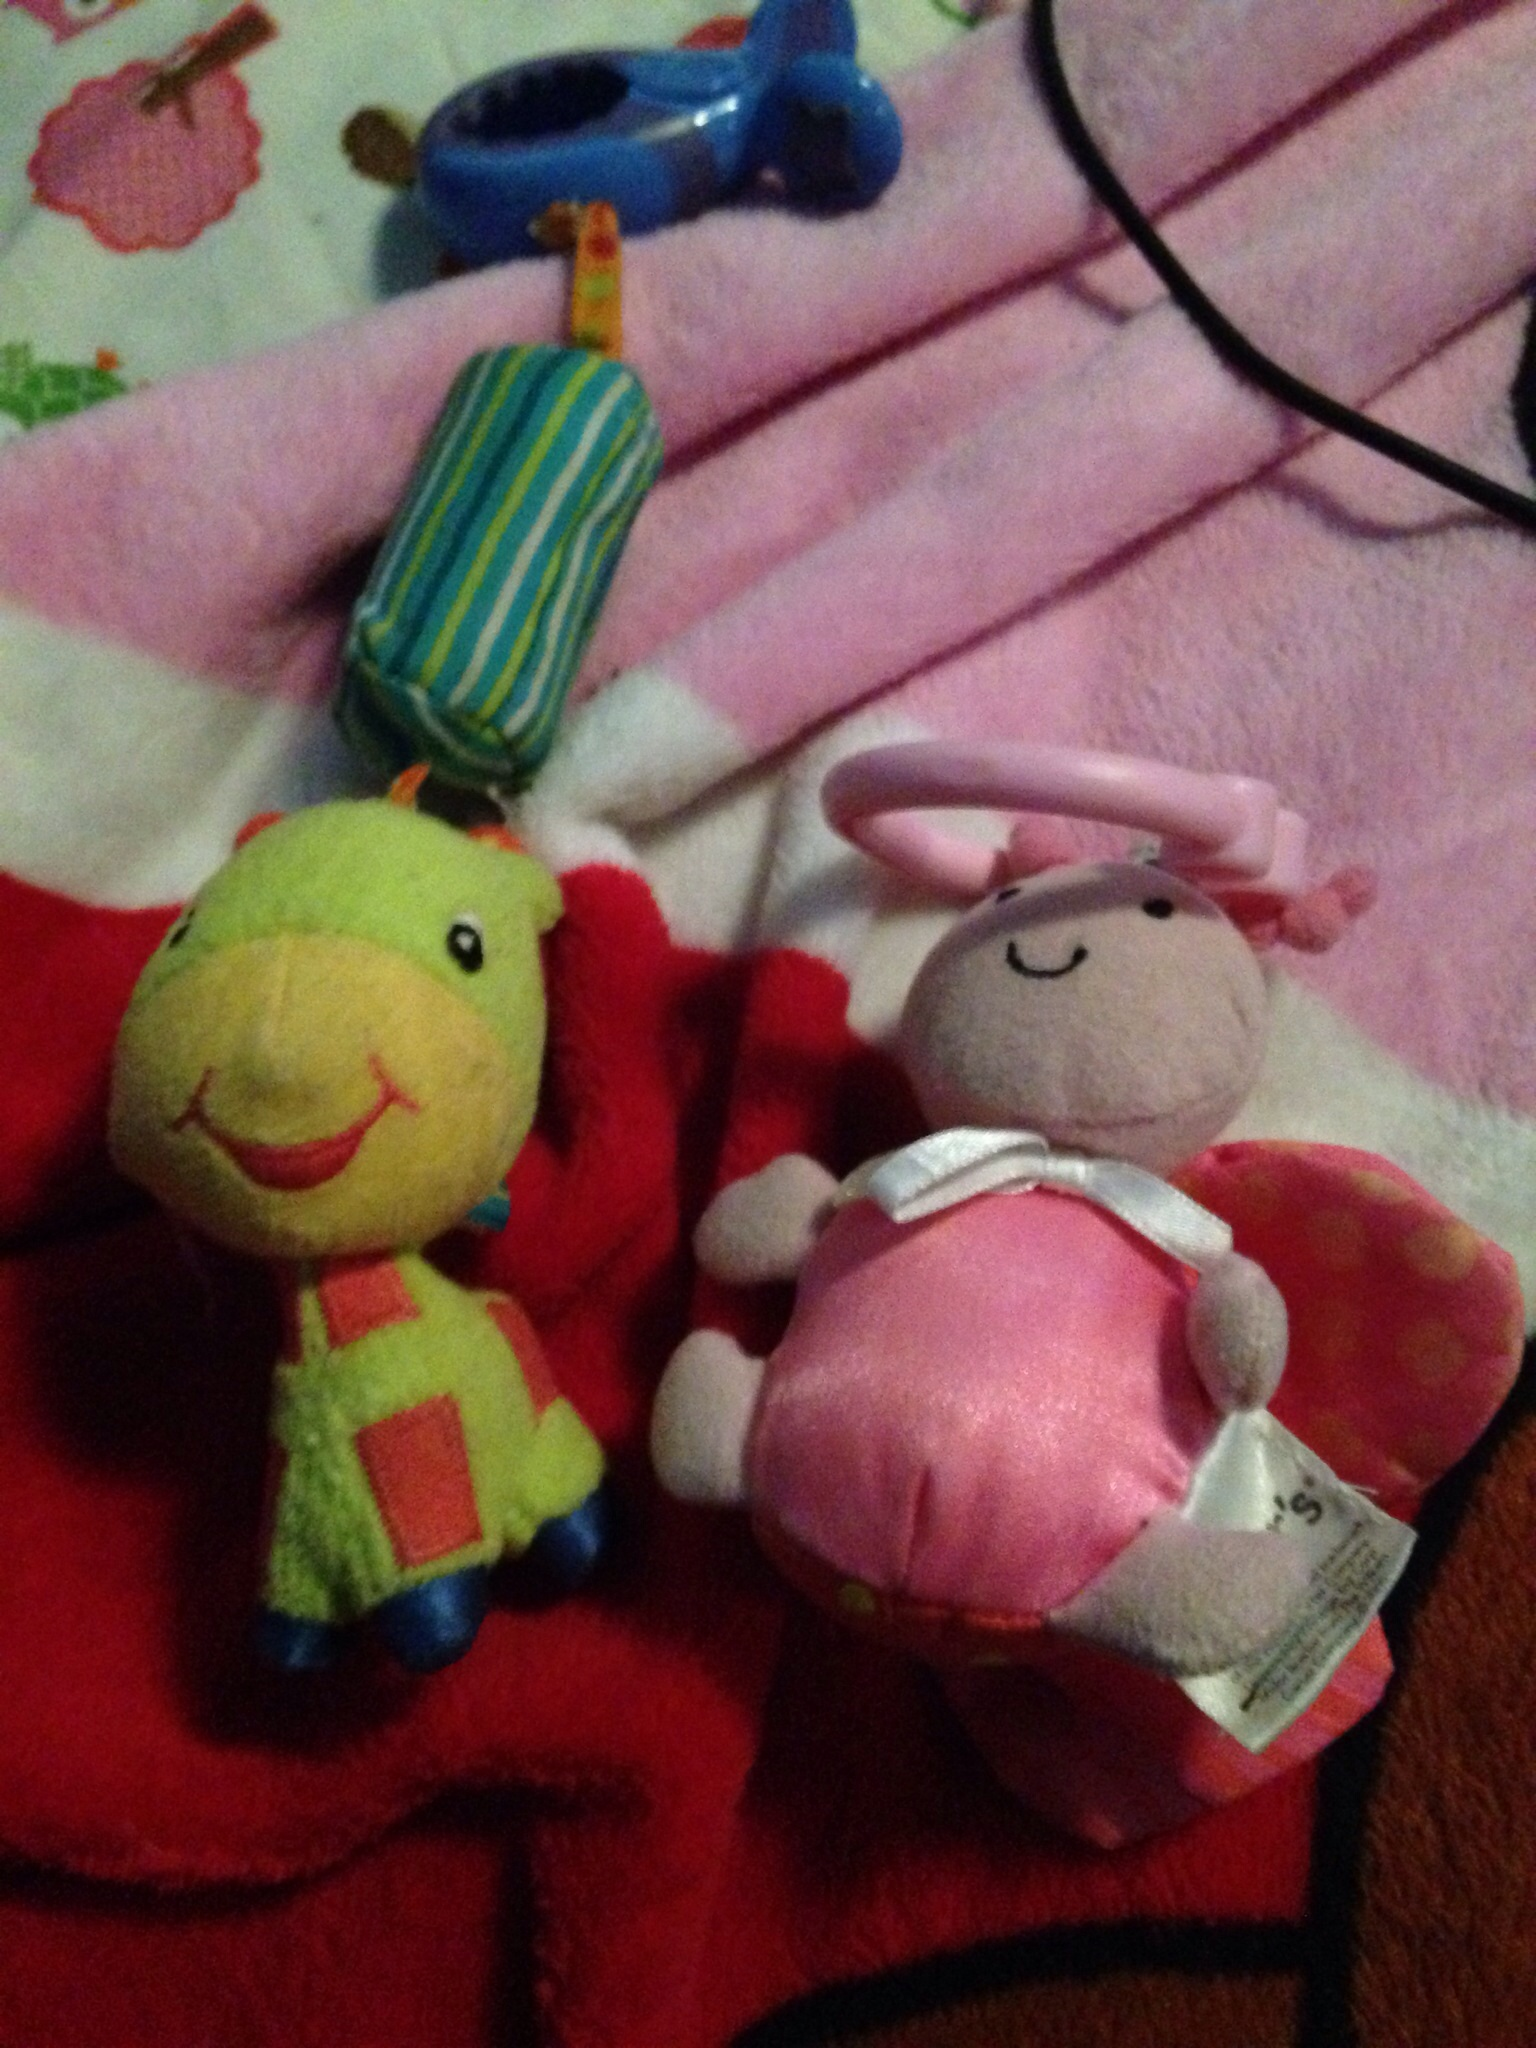 Two Baby Stroller Car Seat Toys Giraff And Lady Bug From Littlekittencreations